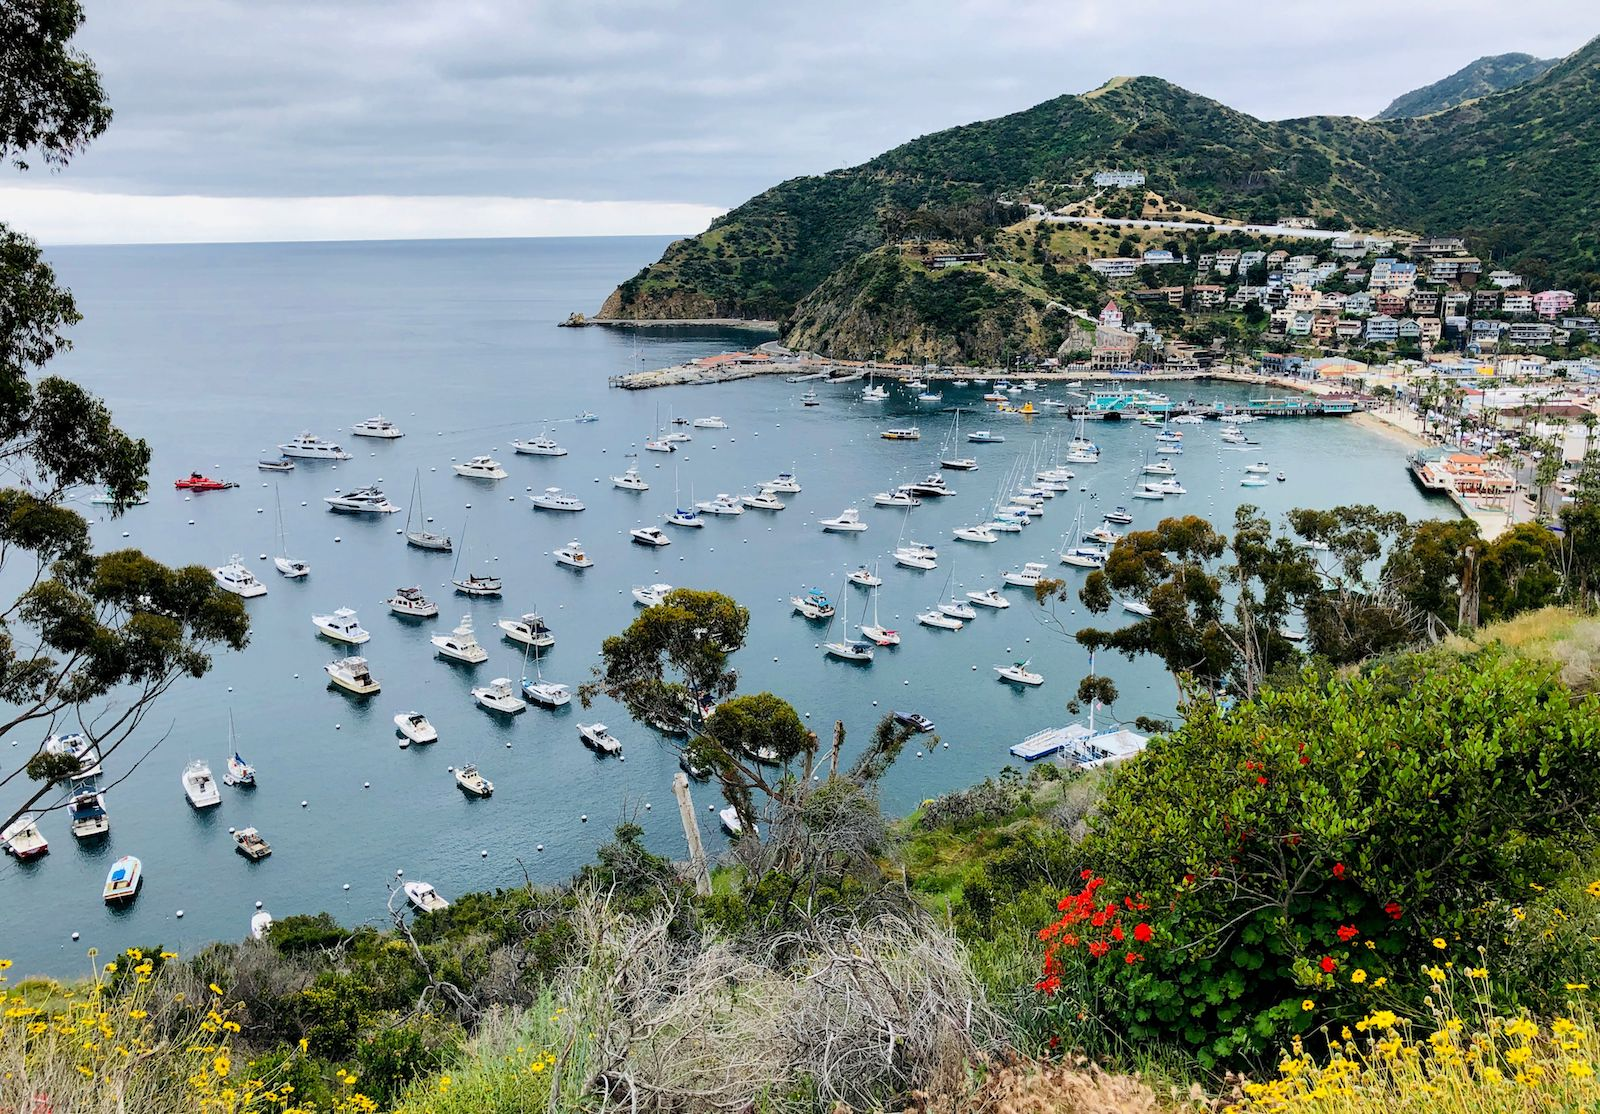 Avalon harbor from the Catalina Island ridge top. (Photo by DANIEL SLIM/AFP/Getty Images)